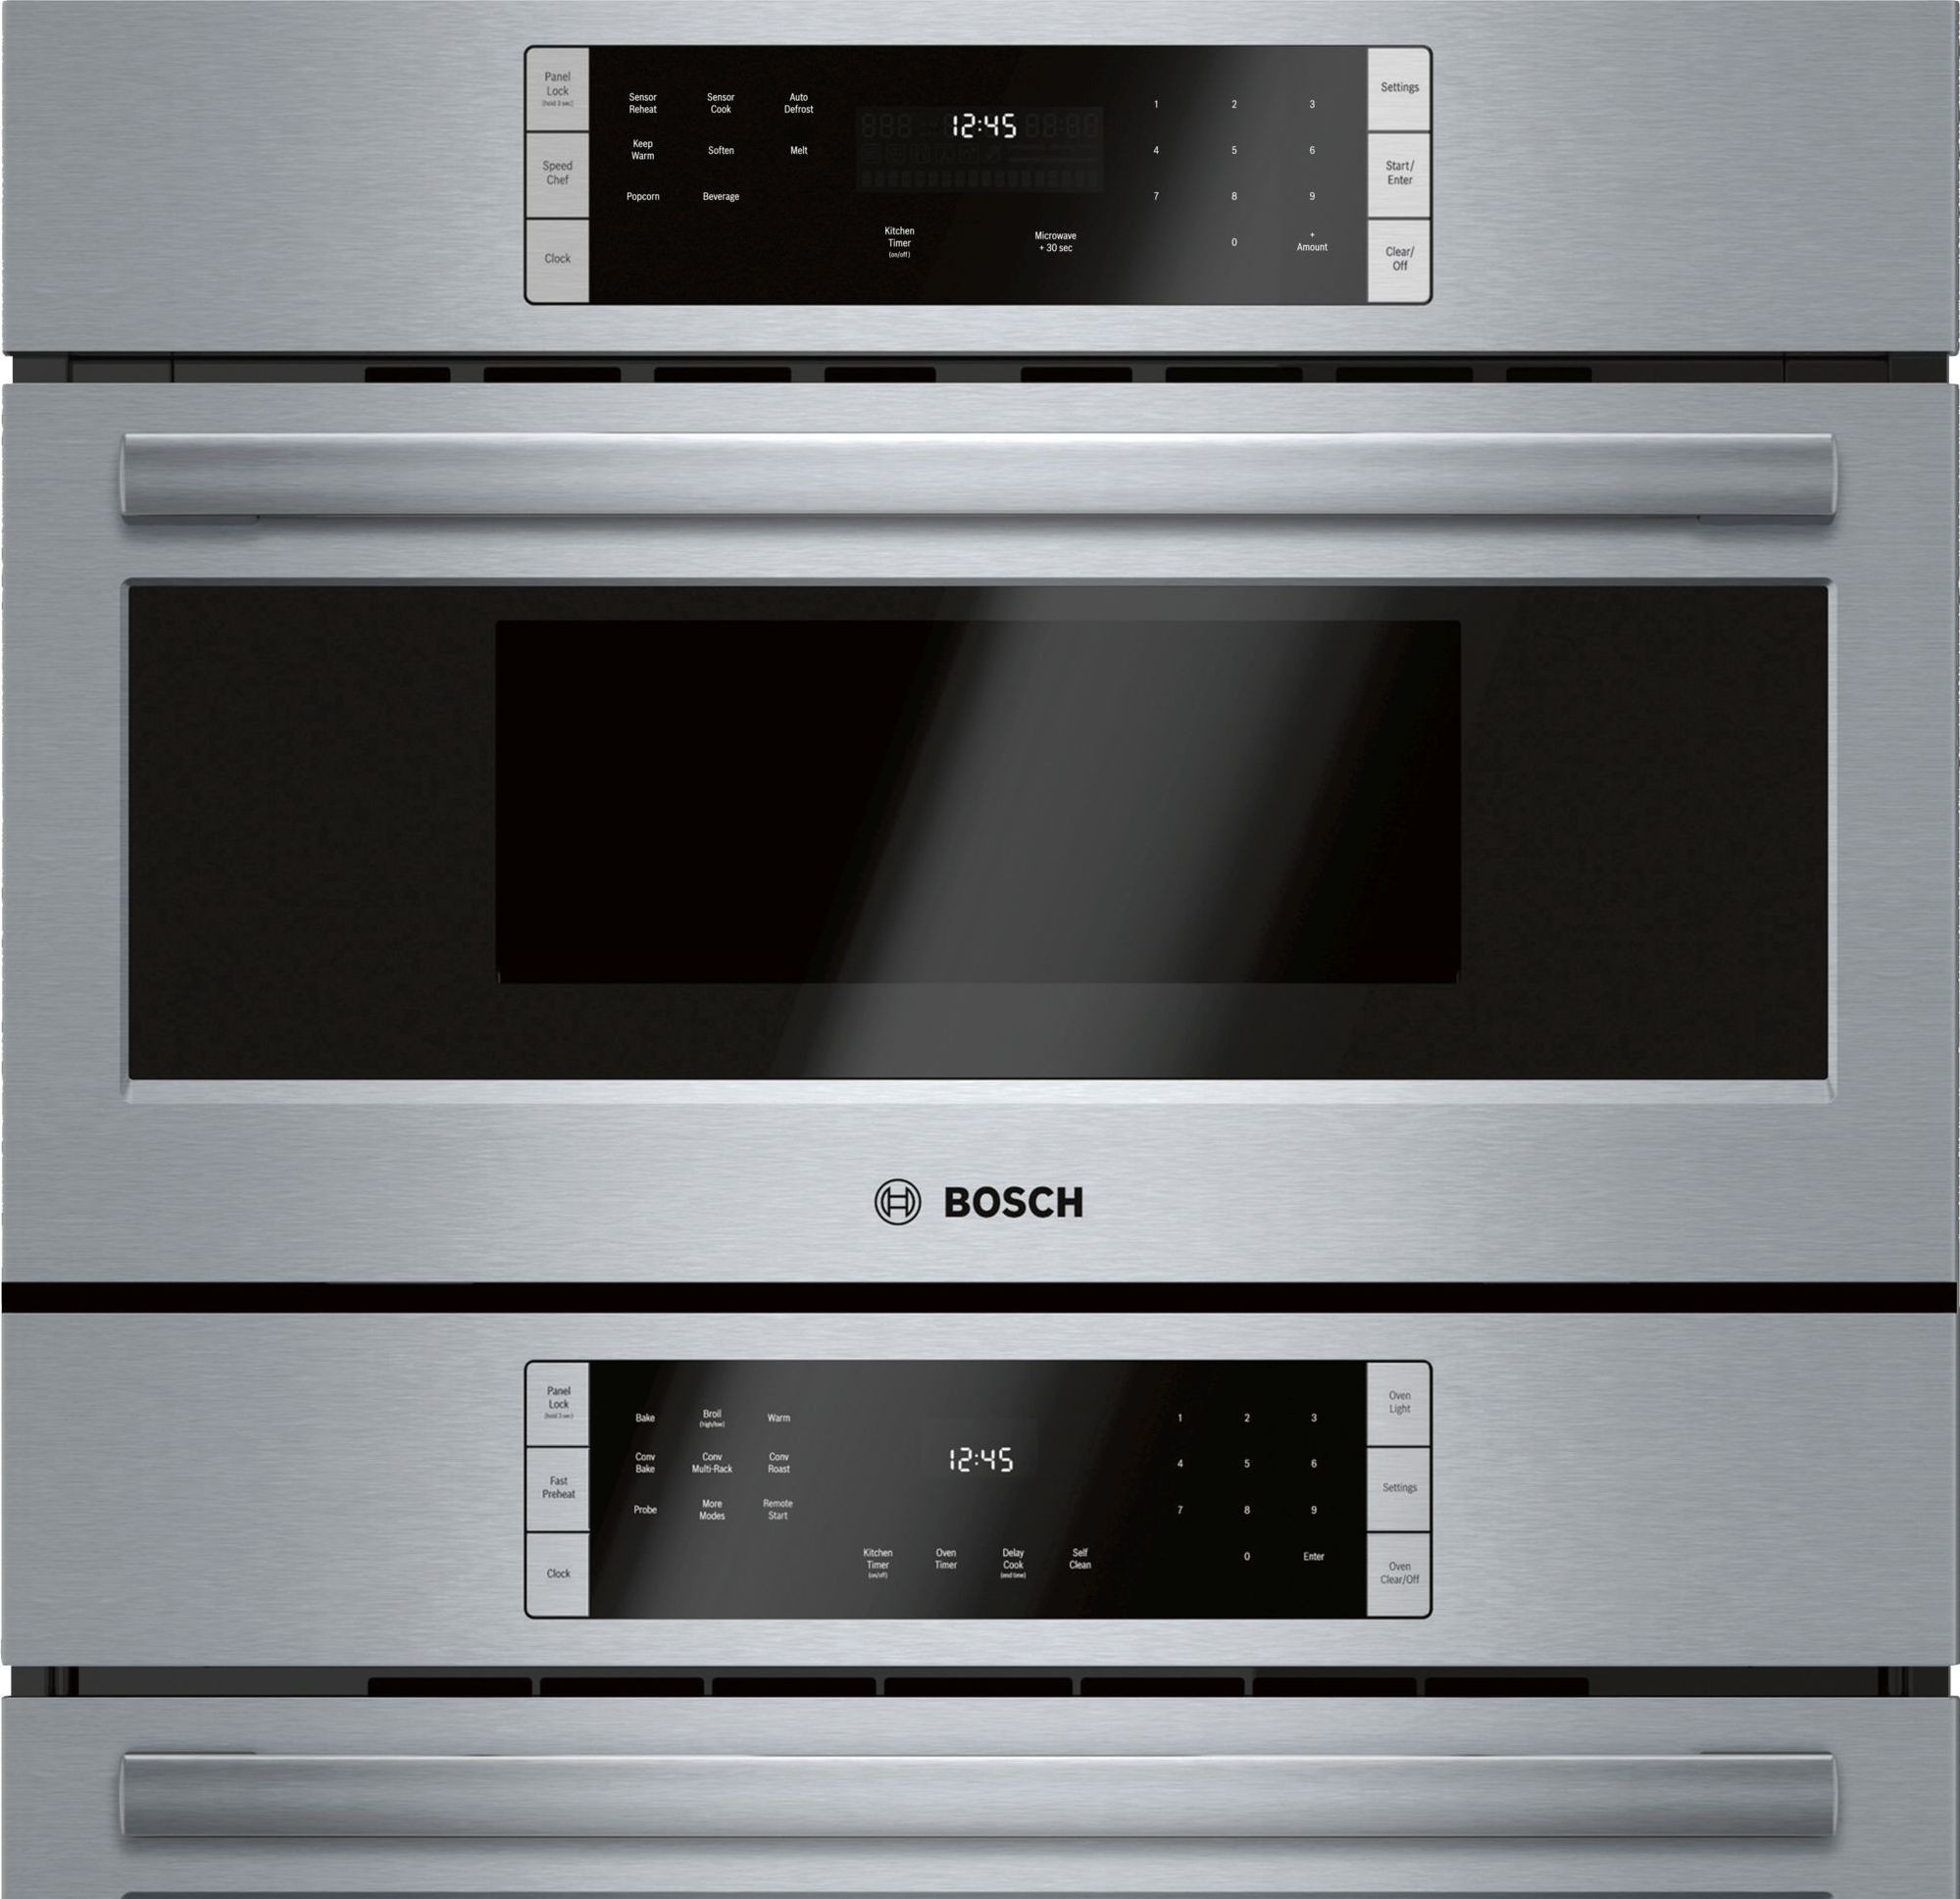 Hbl87m53uc Bosch 800 Series 30 Inch Combination Oven